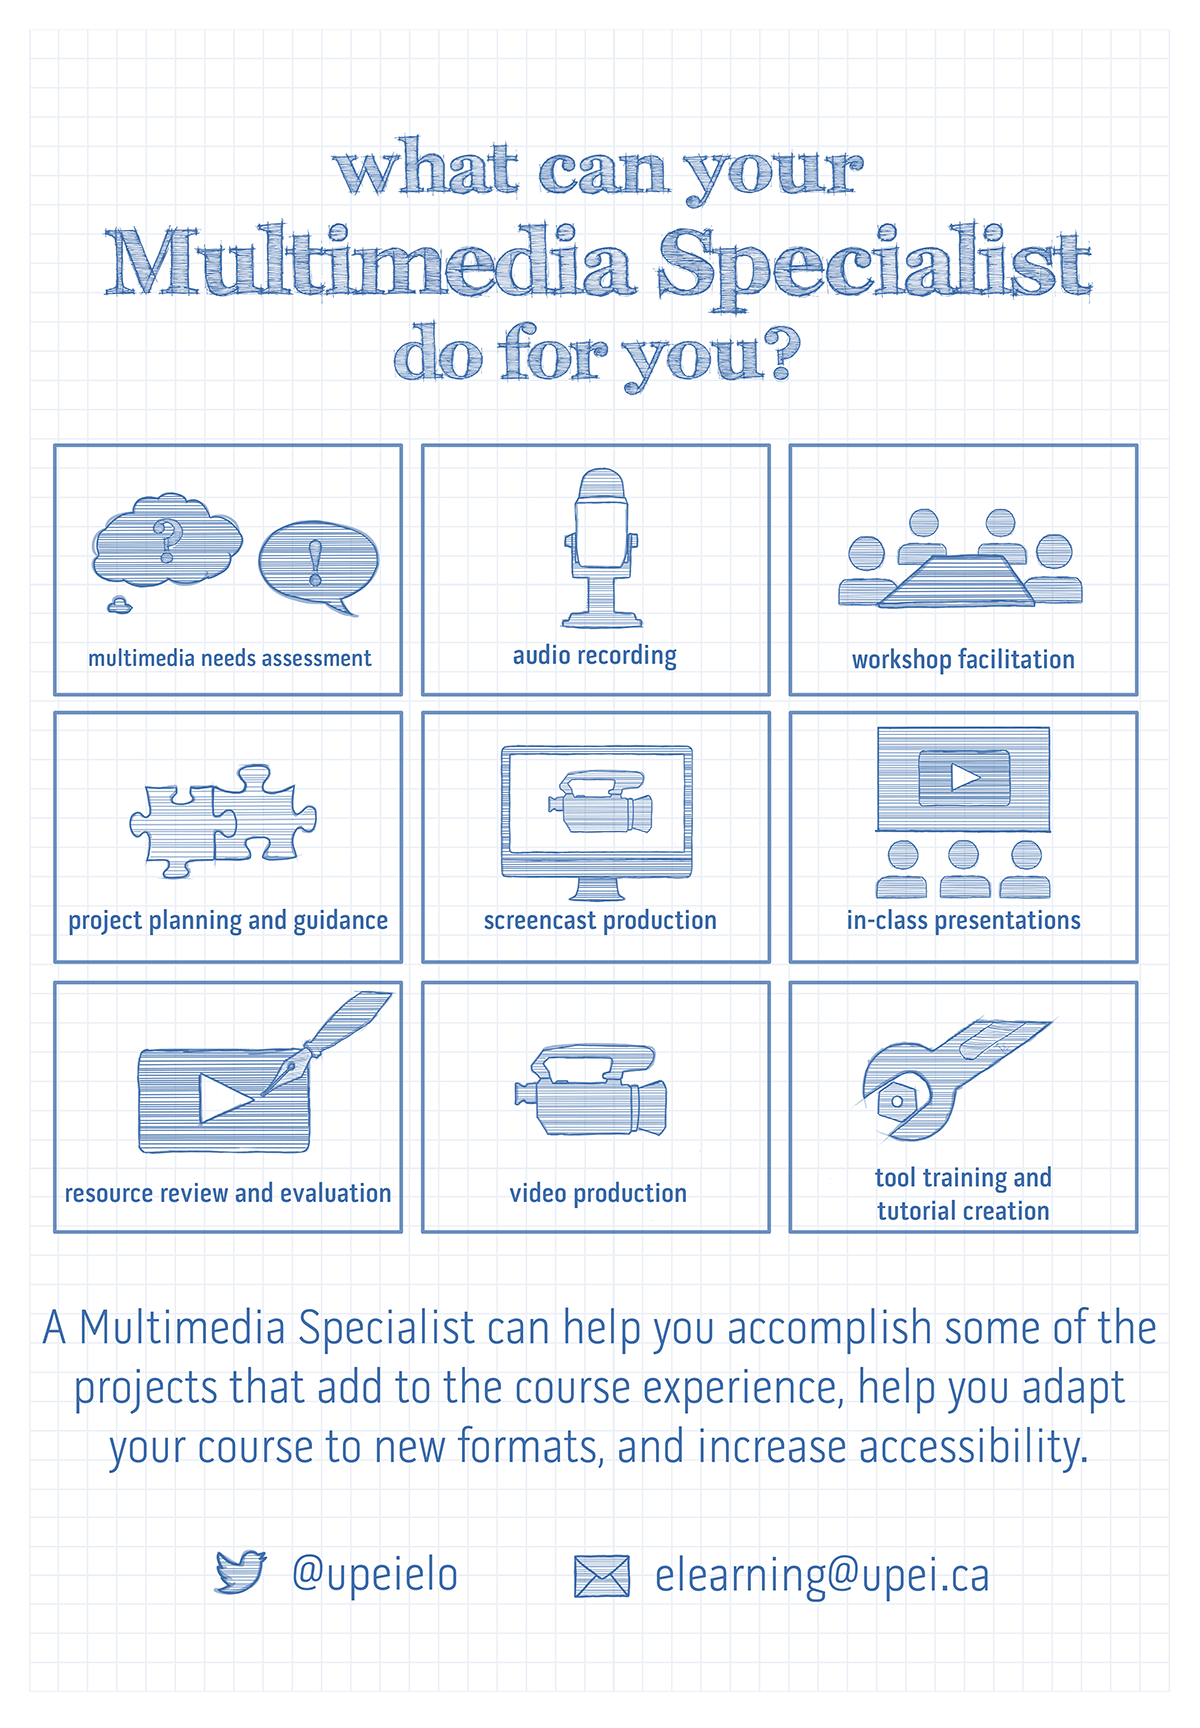 A poster about the services offered by the multimedia specialist. Services are: multimedia needs assessment; project planning and guidance, resource review and evaluation; audio recording; screencast production; video production; workshop facilitation; in-class presentations; and tool training and tutorial creation.